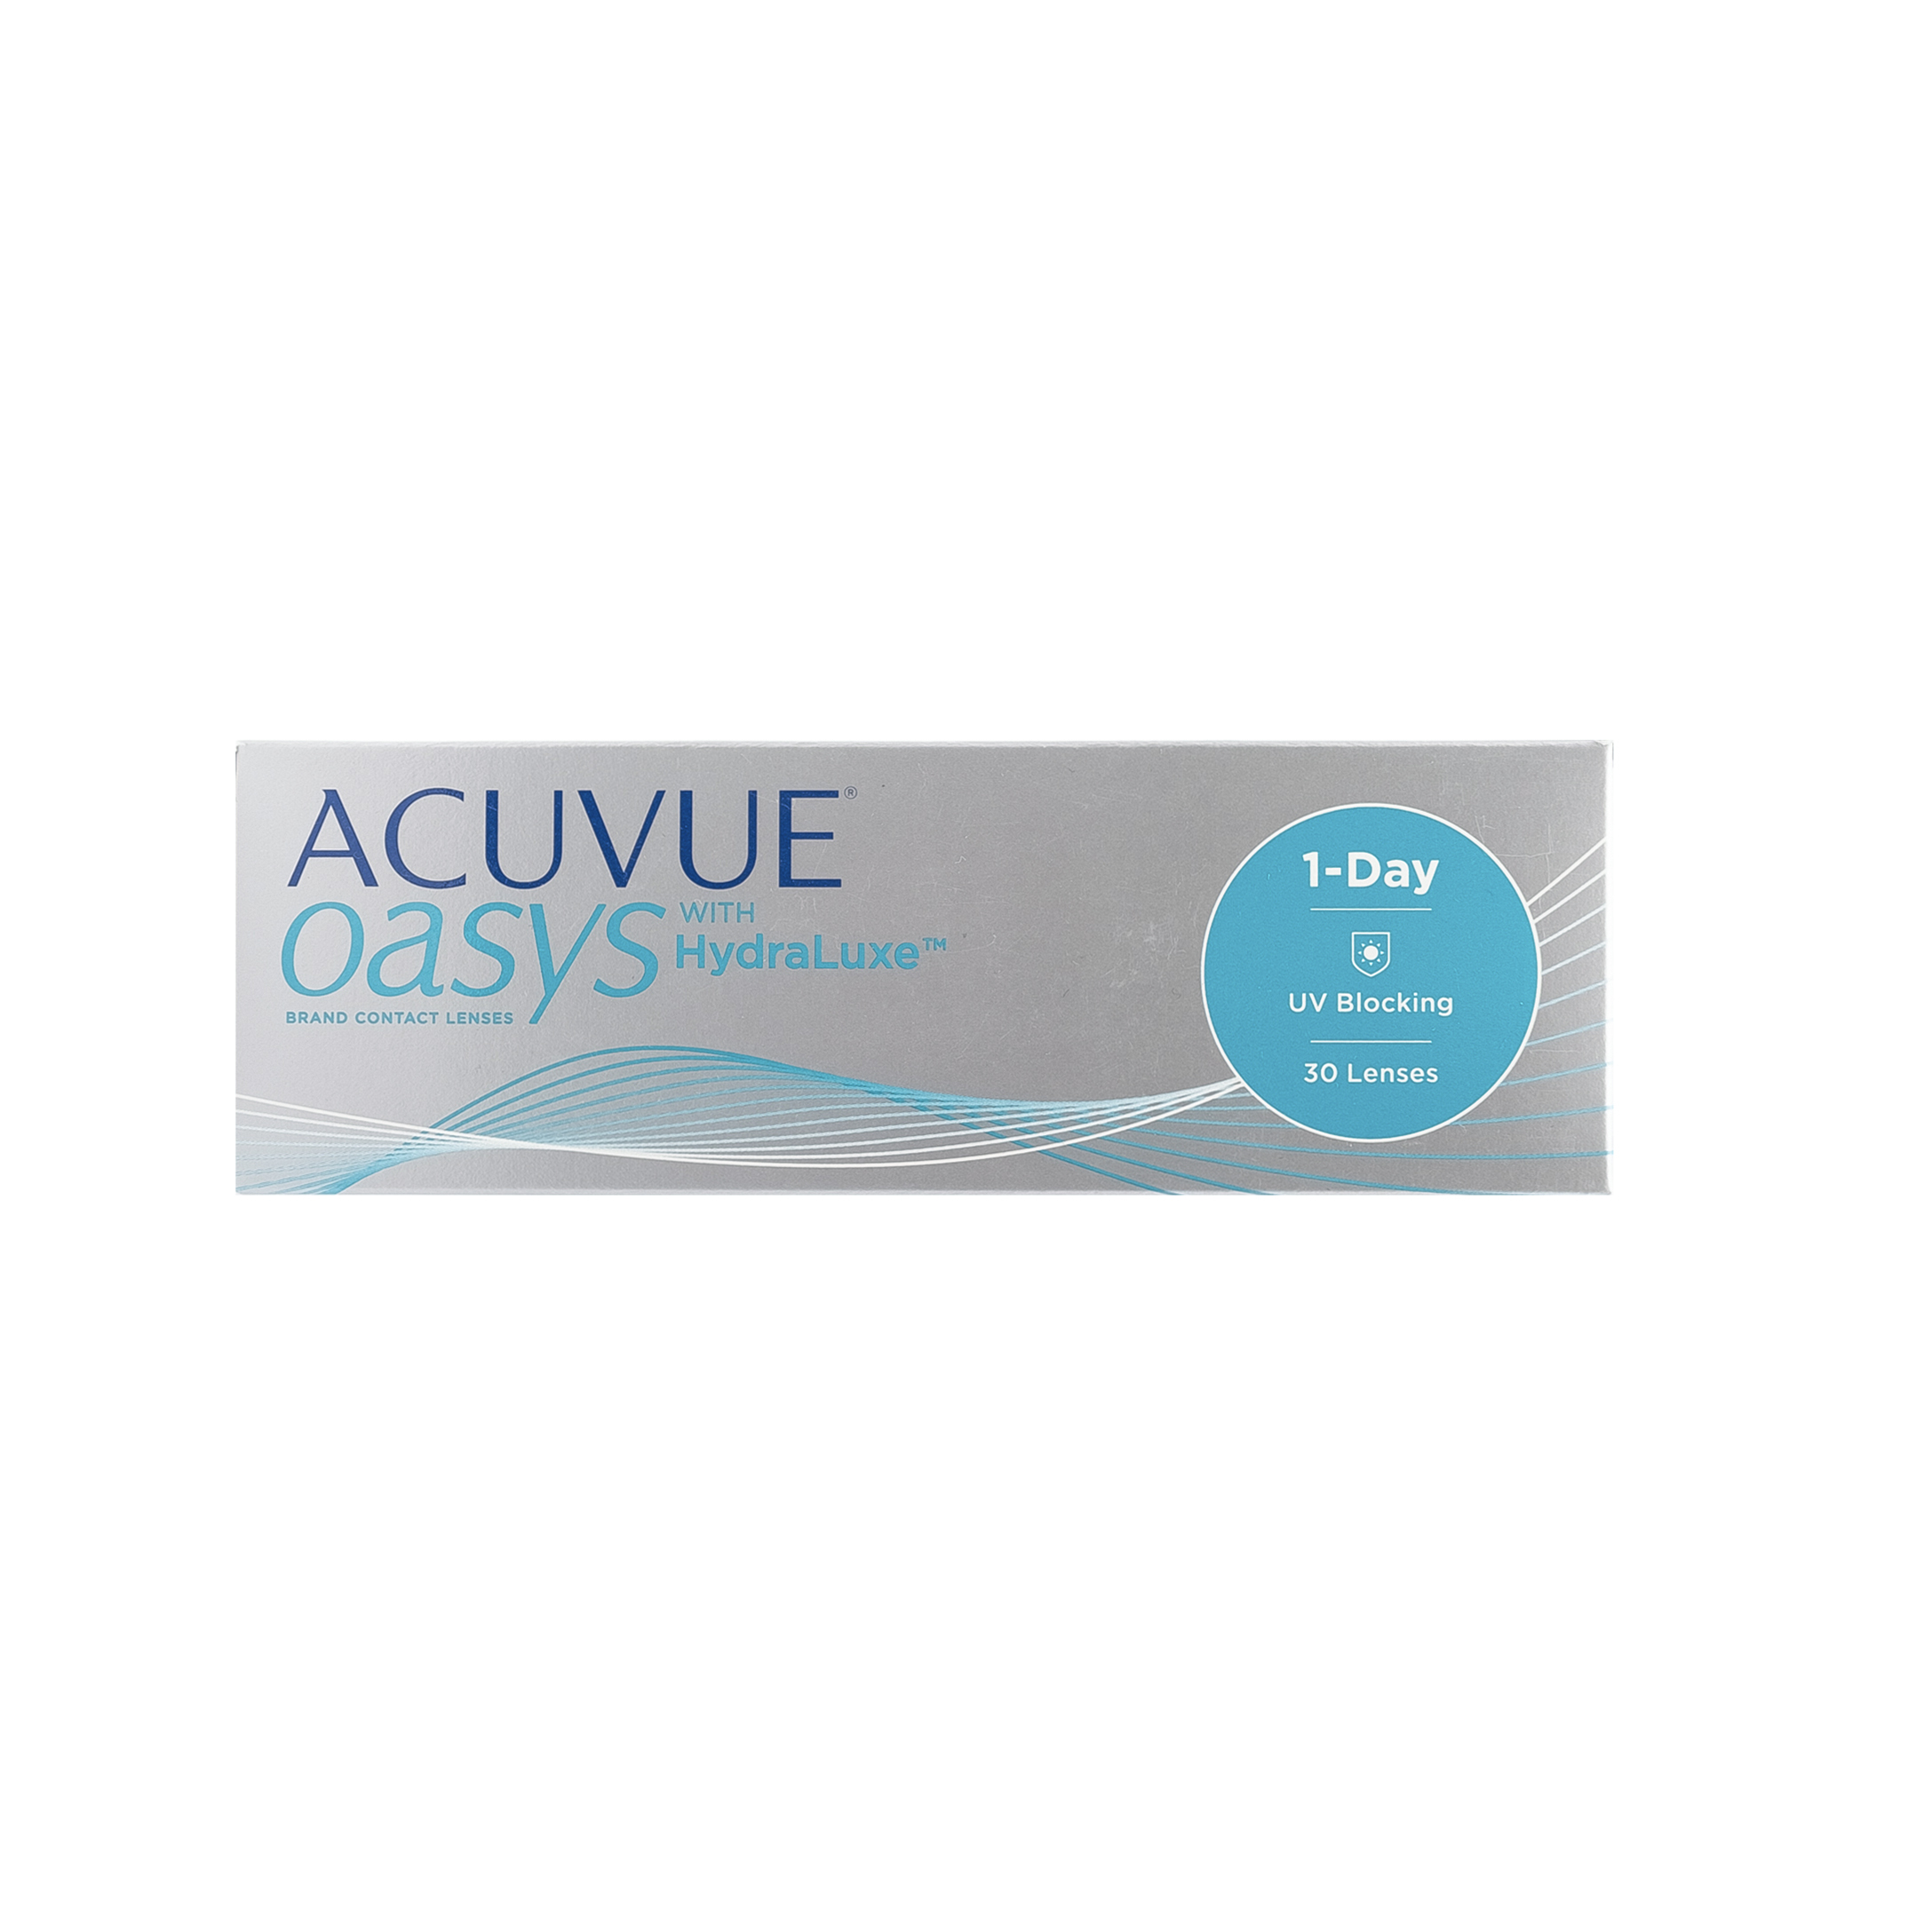 Cиликон-гидрогелевые линзы Acuvue Oasis 1-Day with HydraLuxe